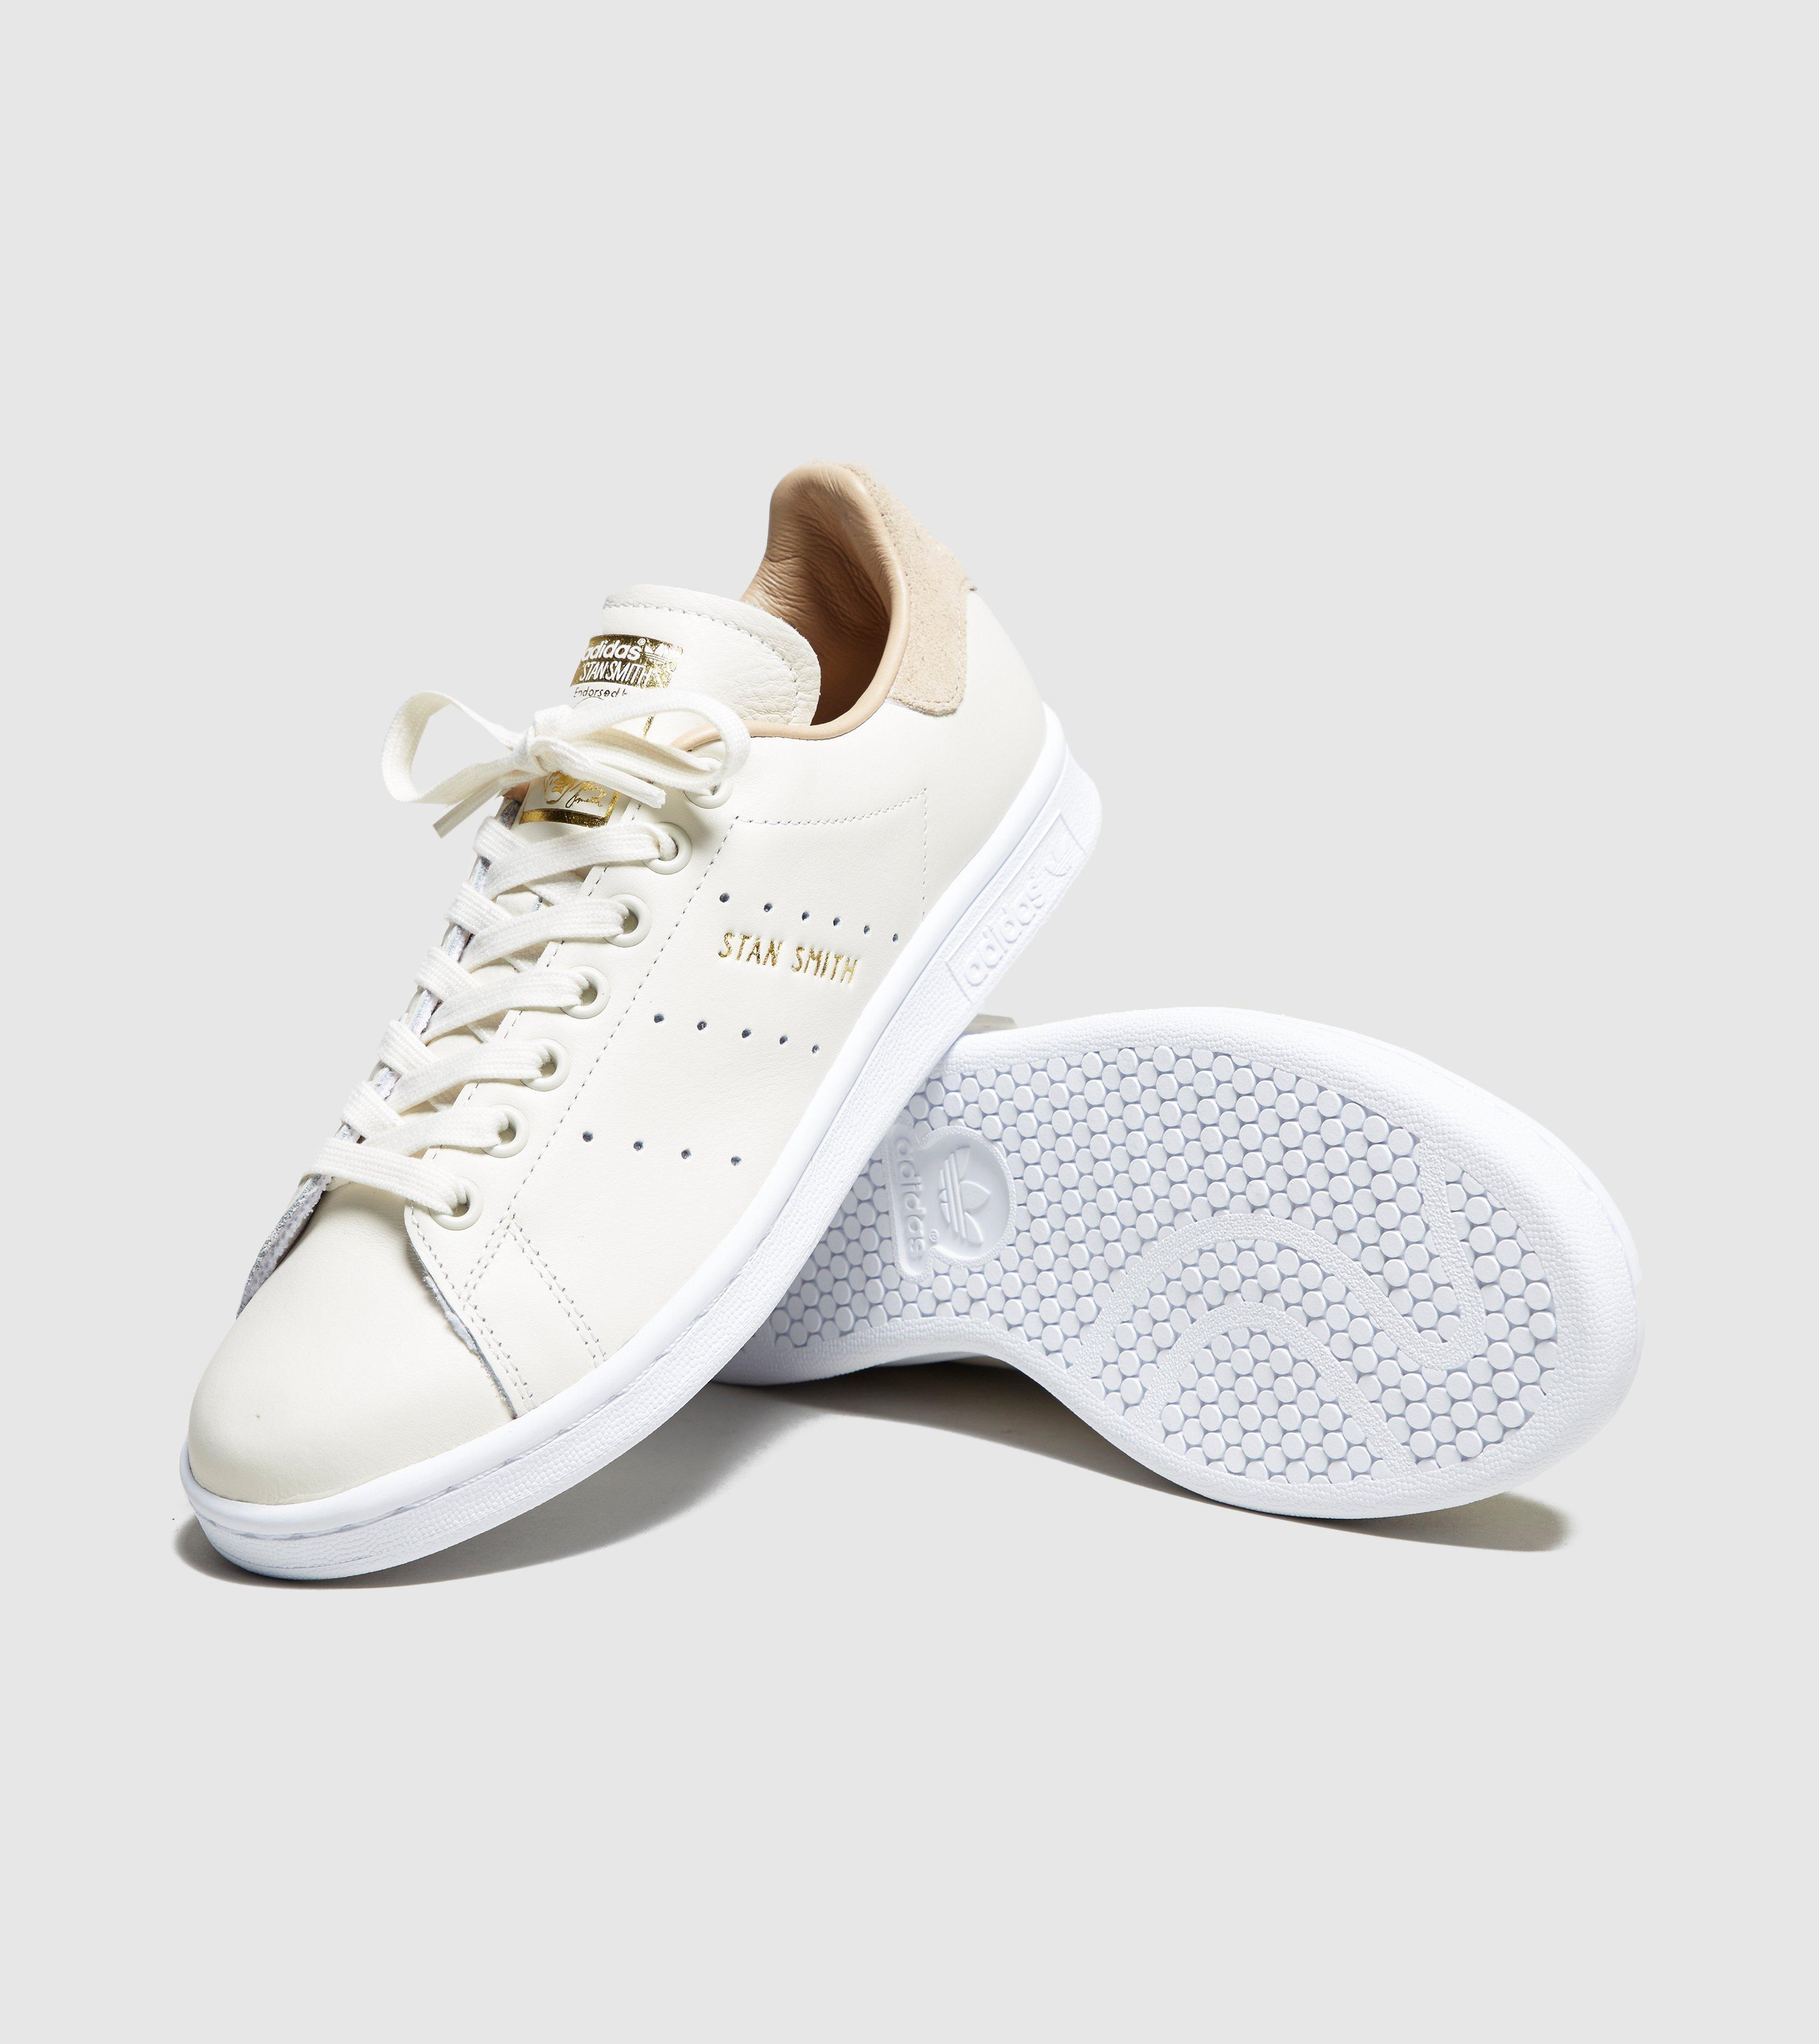 Lyst adidas originali stan smith premio donne in bianco.